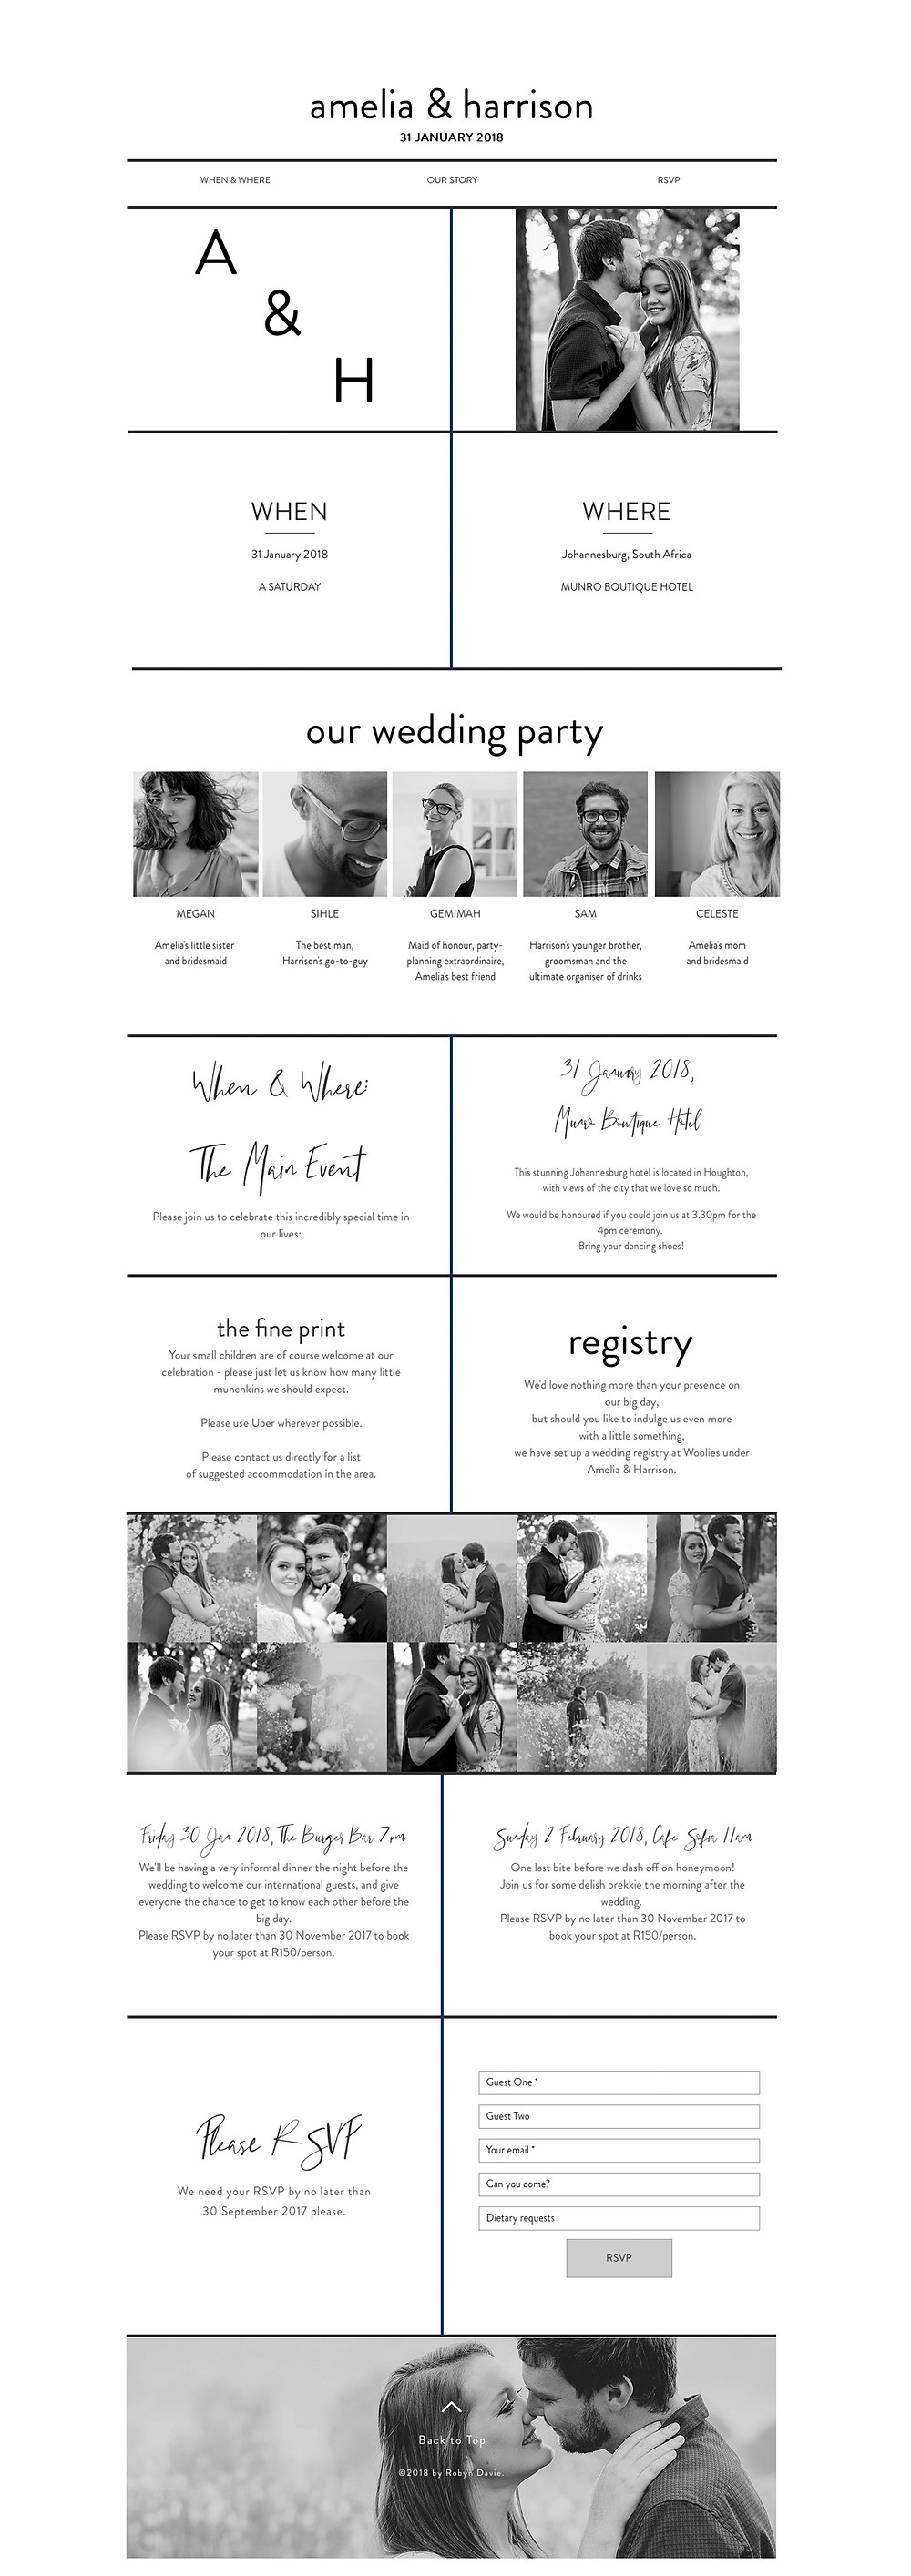 wedding websites johannesburg, wedding website design south africa, wedding and engagement websites, announcing your wedding on a website, robyn davie photography, top wedding photographers johannesburg, the pretty blog wedding photographers, event and wedding suppliers south africa, black book collective weddings and events, tips for wedding success, robyn davie weddings, hipster wedding johannesburg, bryanston forest wedding pictures, catholic church wedding, robyn davie wedding photography, top wedding photographers south africa